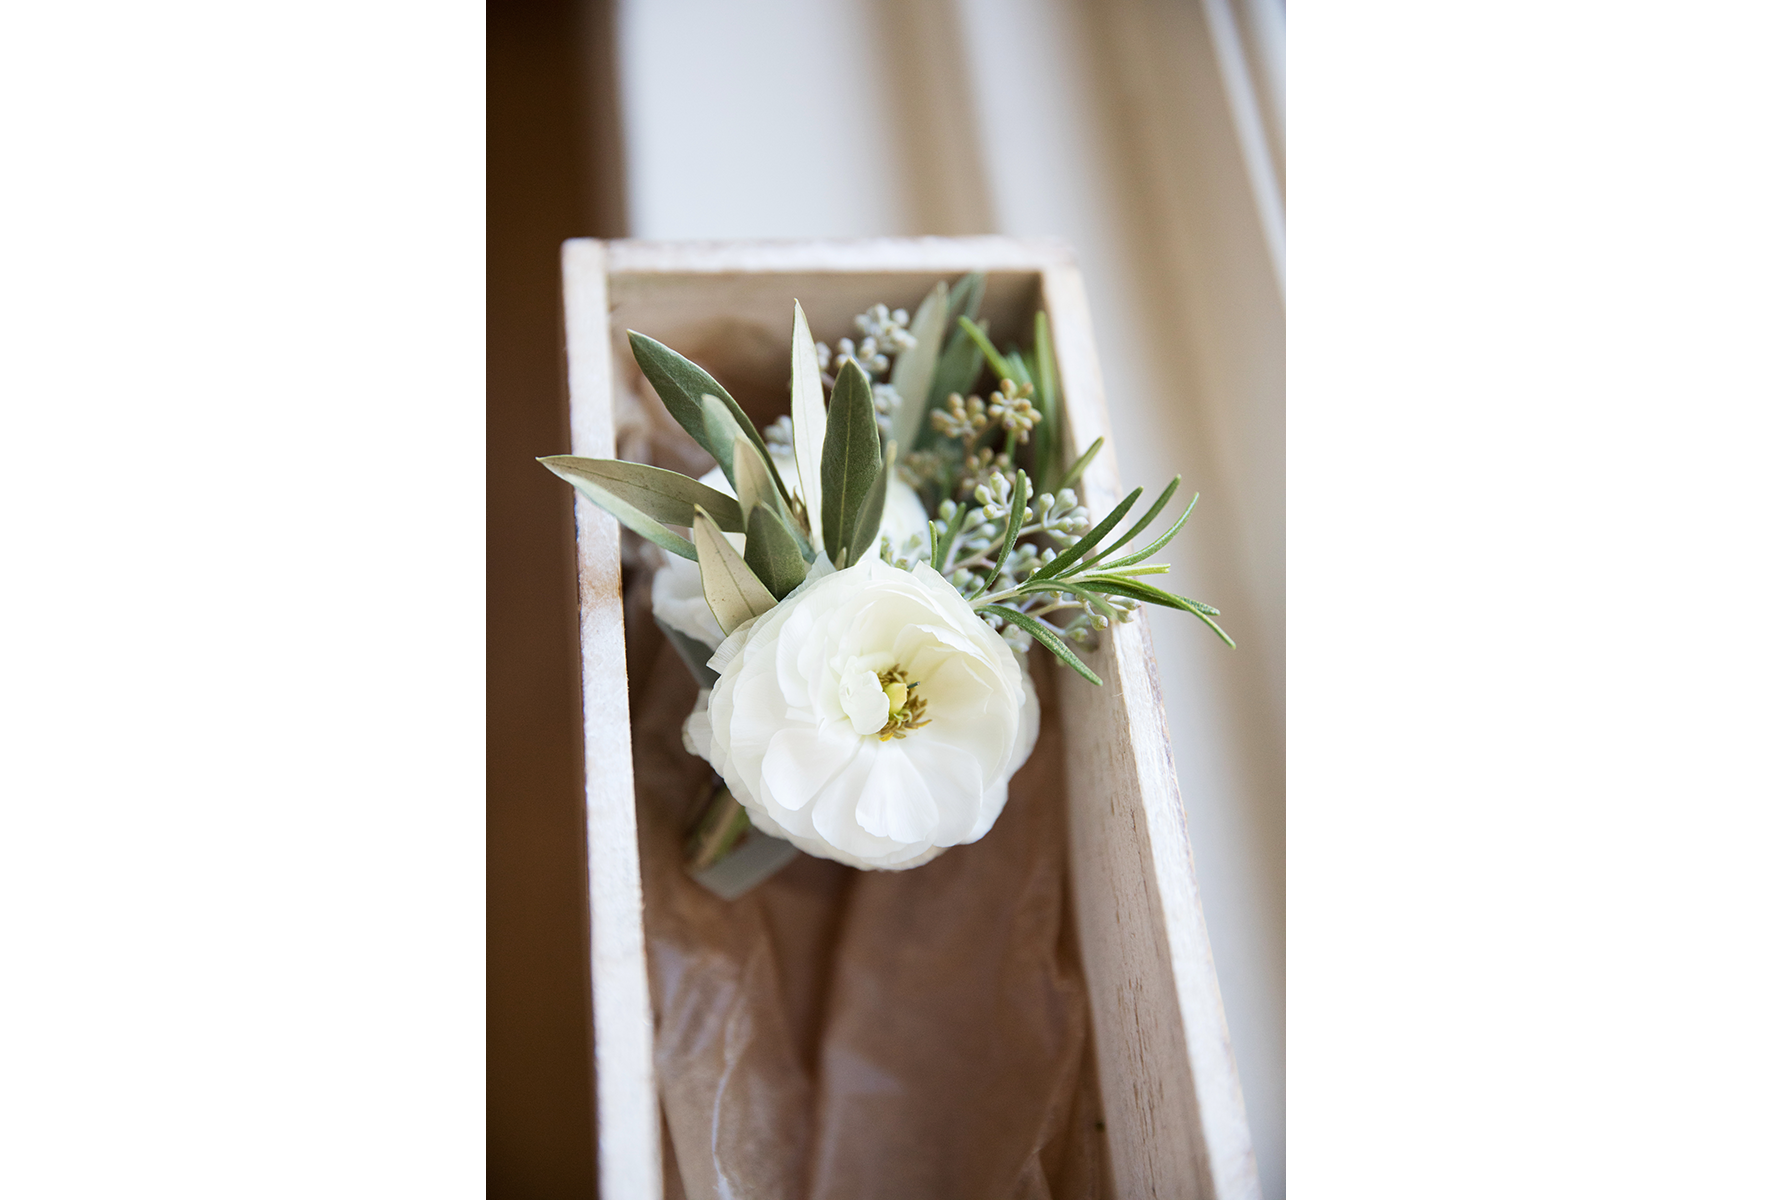 raquelreis_wedding_photography_wheatleigh_003.png